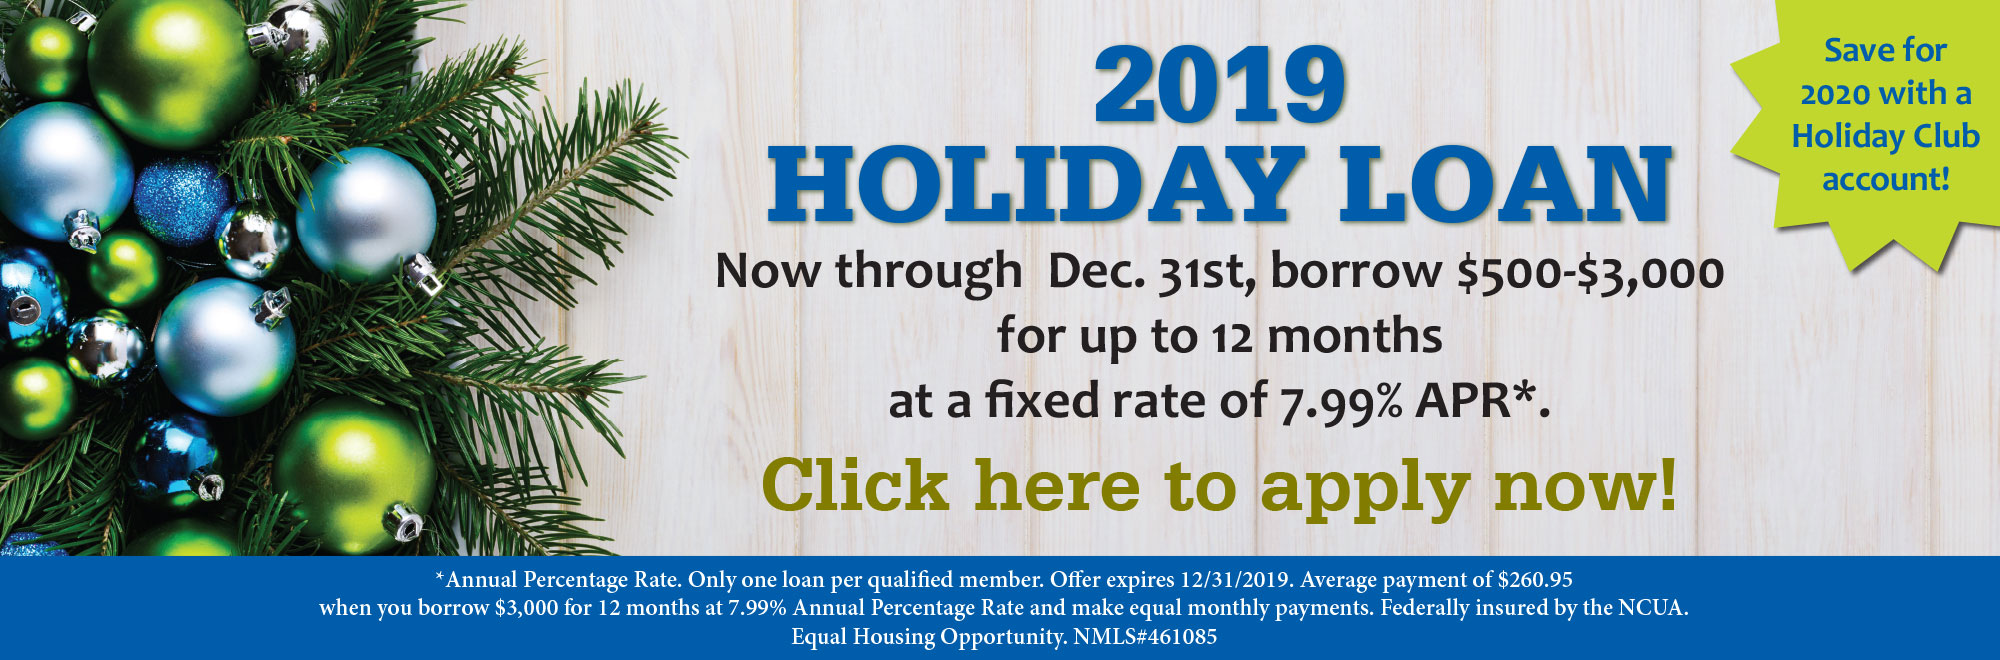 Now through Dec. 31st, borrow $500-$3000 for up to 12 months at a fixed rate of 7.99% Annual Percentage Rate